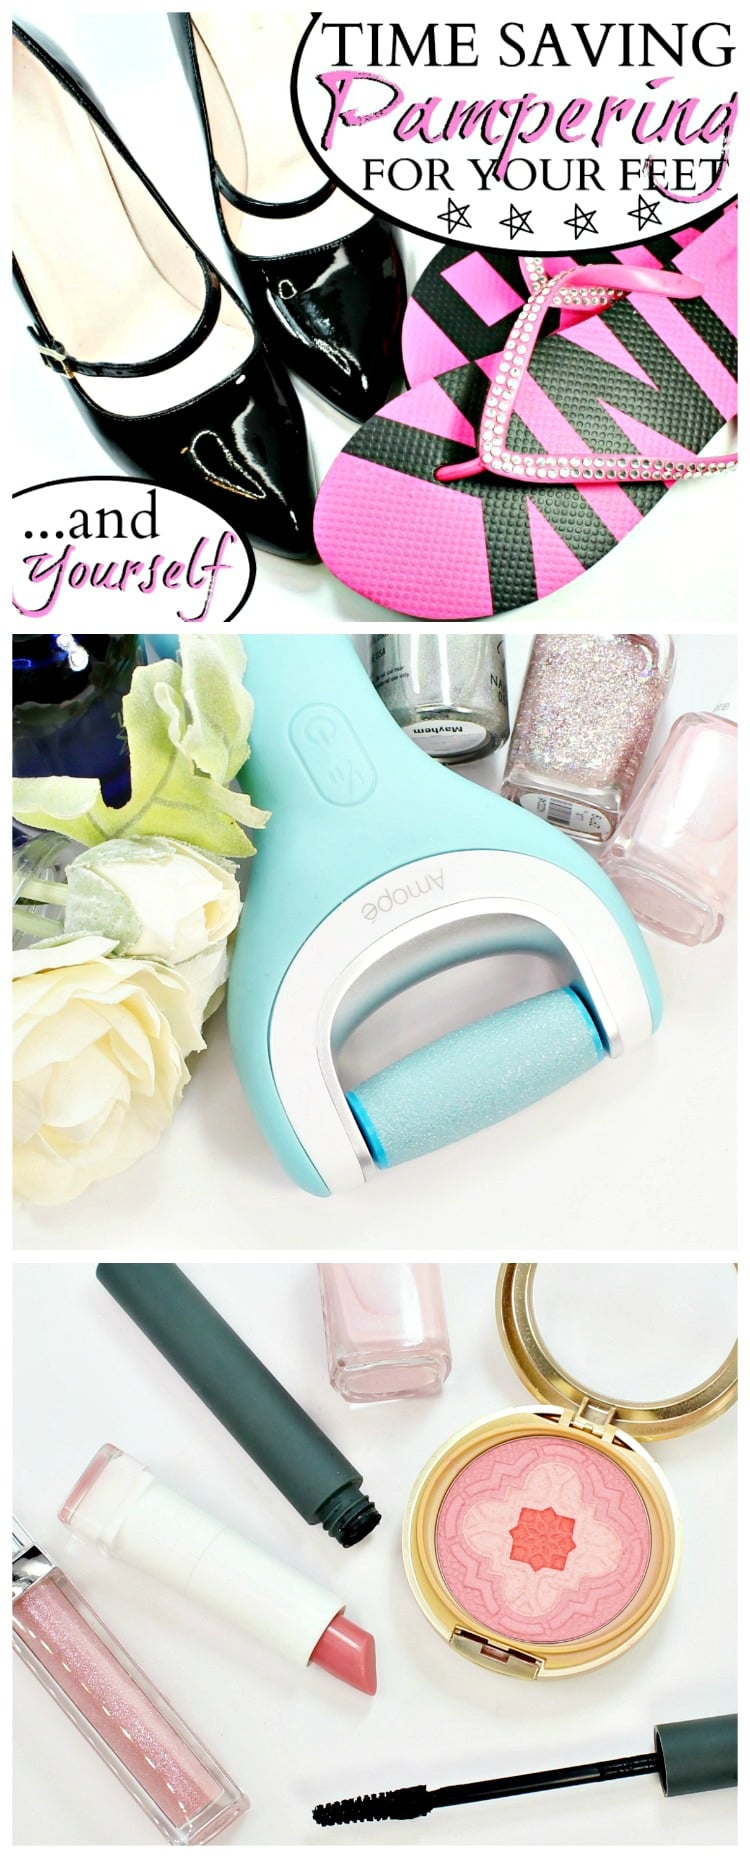 Time Saving Pampering for Your Feet and yourself pinterest